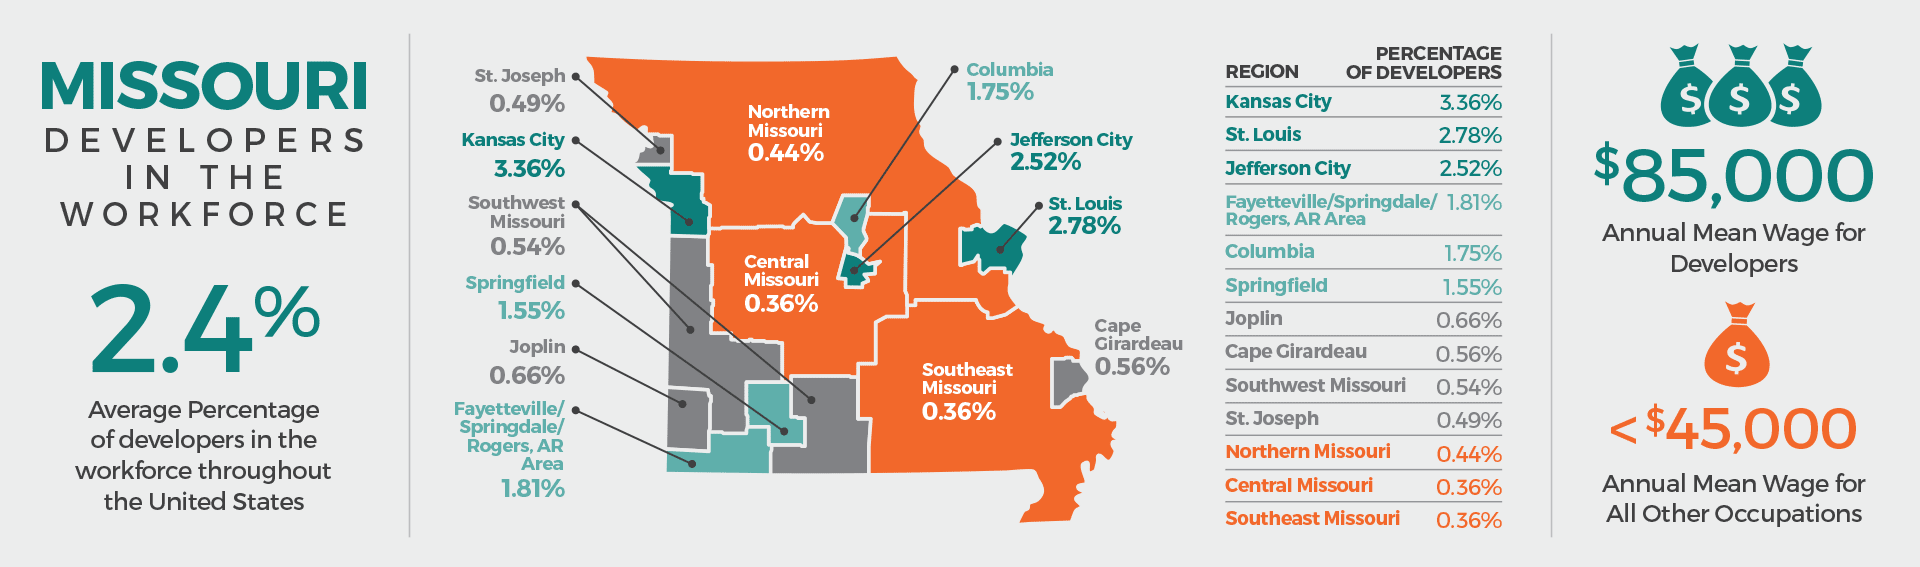 Missouri Developers in the Workforce Infographic